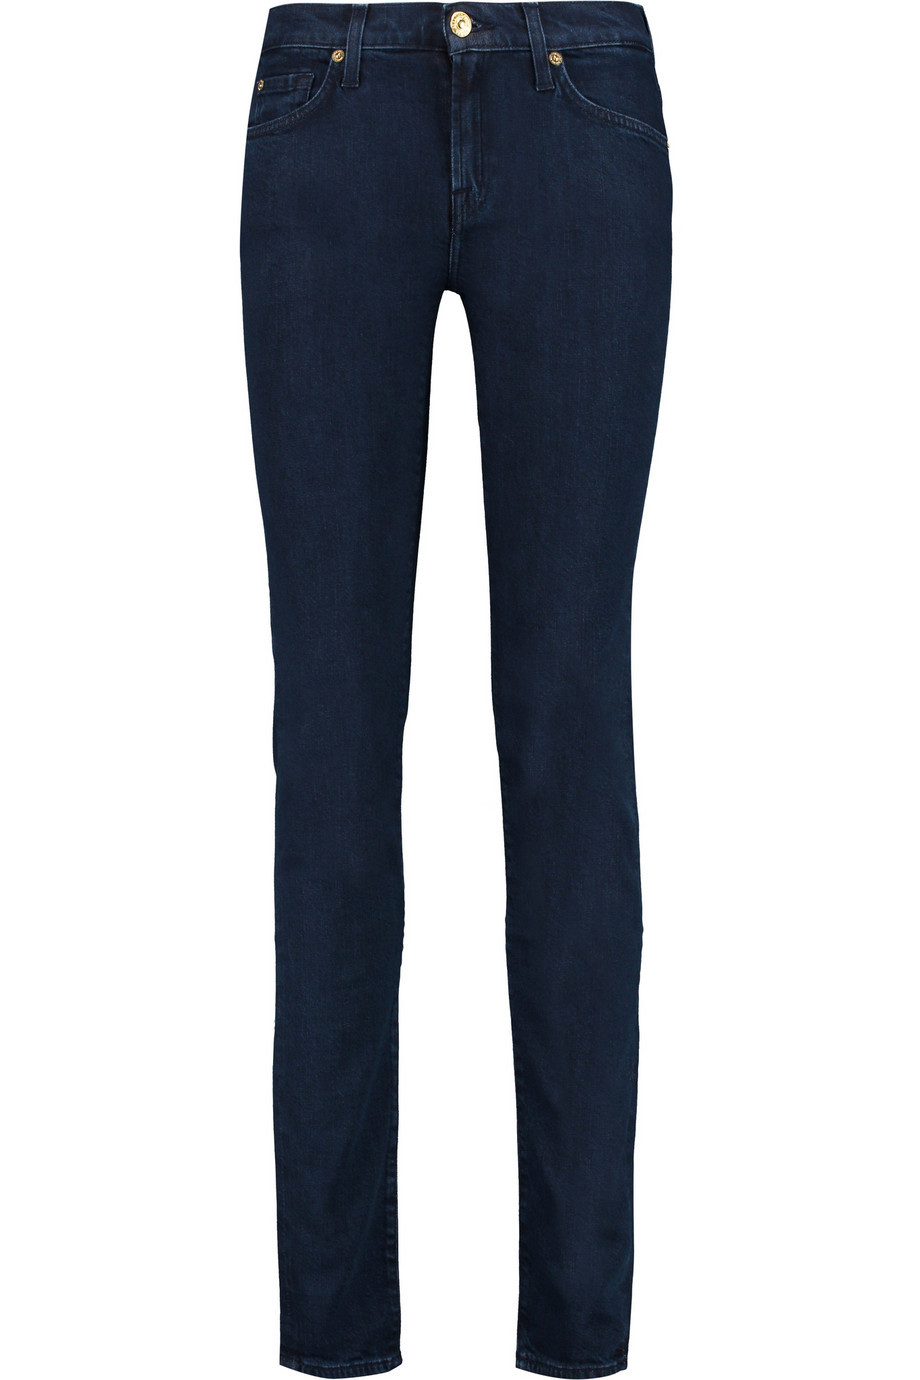 Roxanne Mid Rise Slim Leg Jeans Dark Denim - style: skinny leg; length: standard; pattern: plain; pocket detail: traditional 5 pocket; waist: mid/regular rise; predominant colour: navy; occasions: casual, creative work; fibres: cotton - stretch; jeans detail: dark wash; texture group: denim; pattern type: fabric; season: a/w 2015